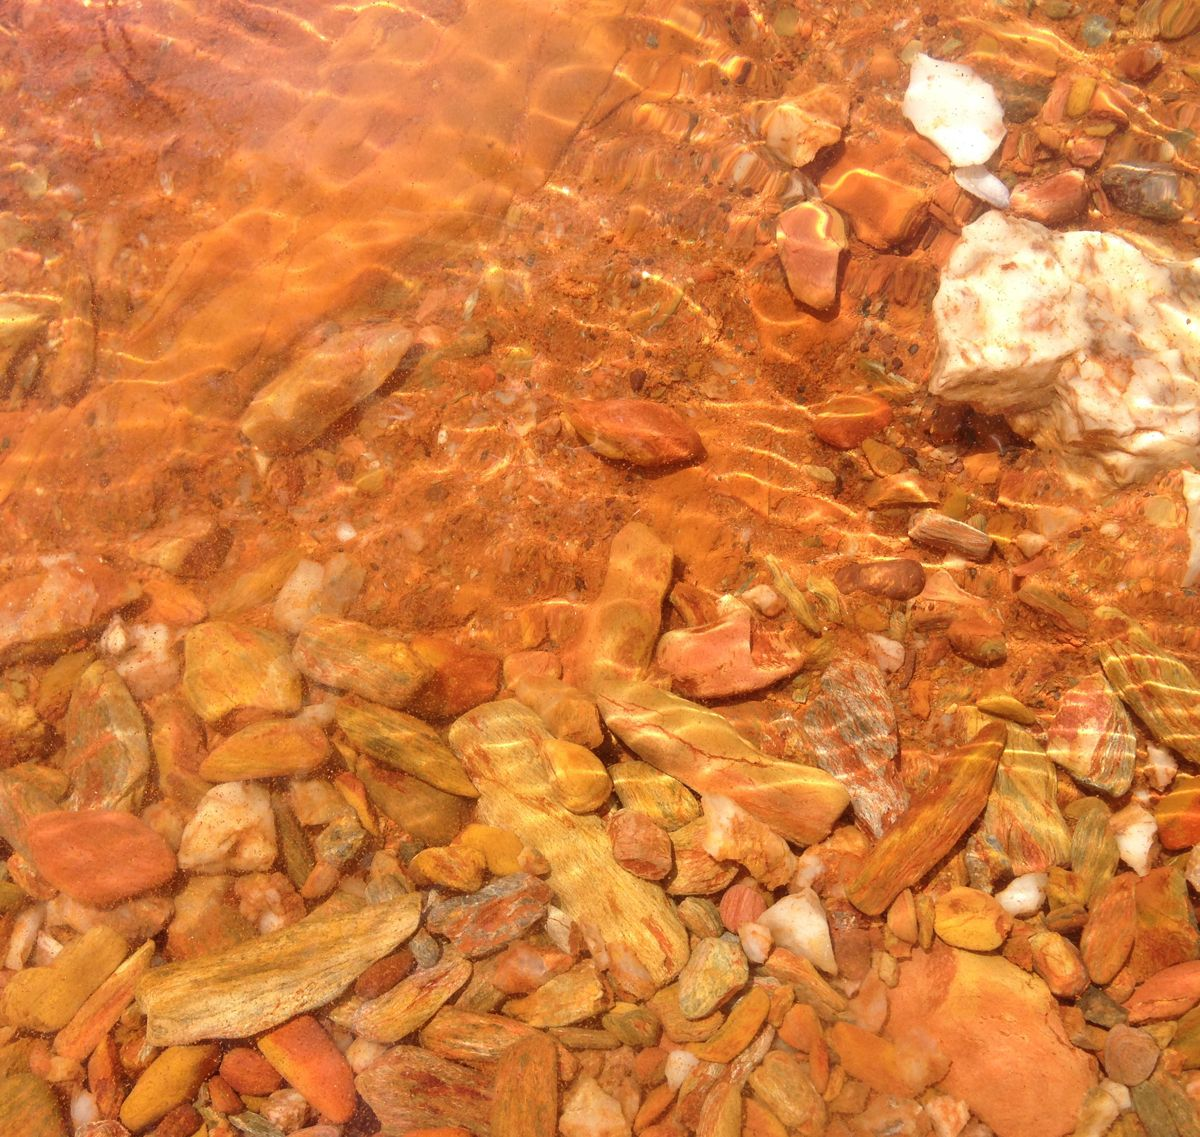 The orange/red pebbles under the water along the bank.